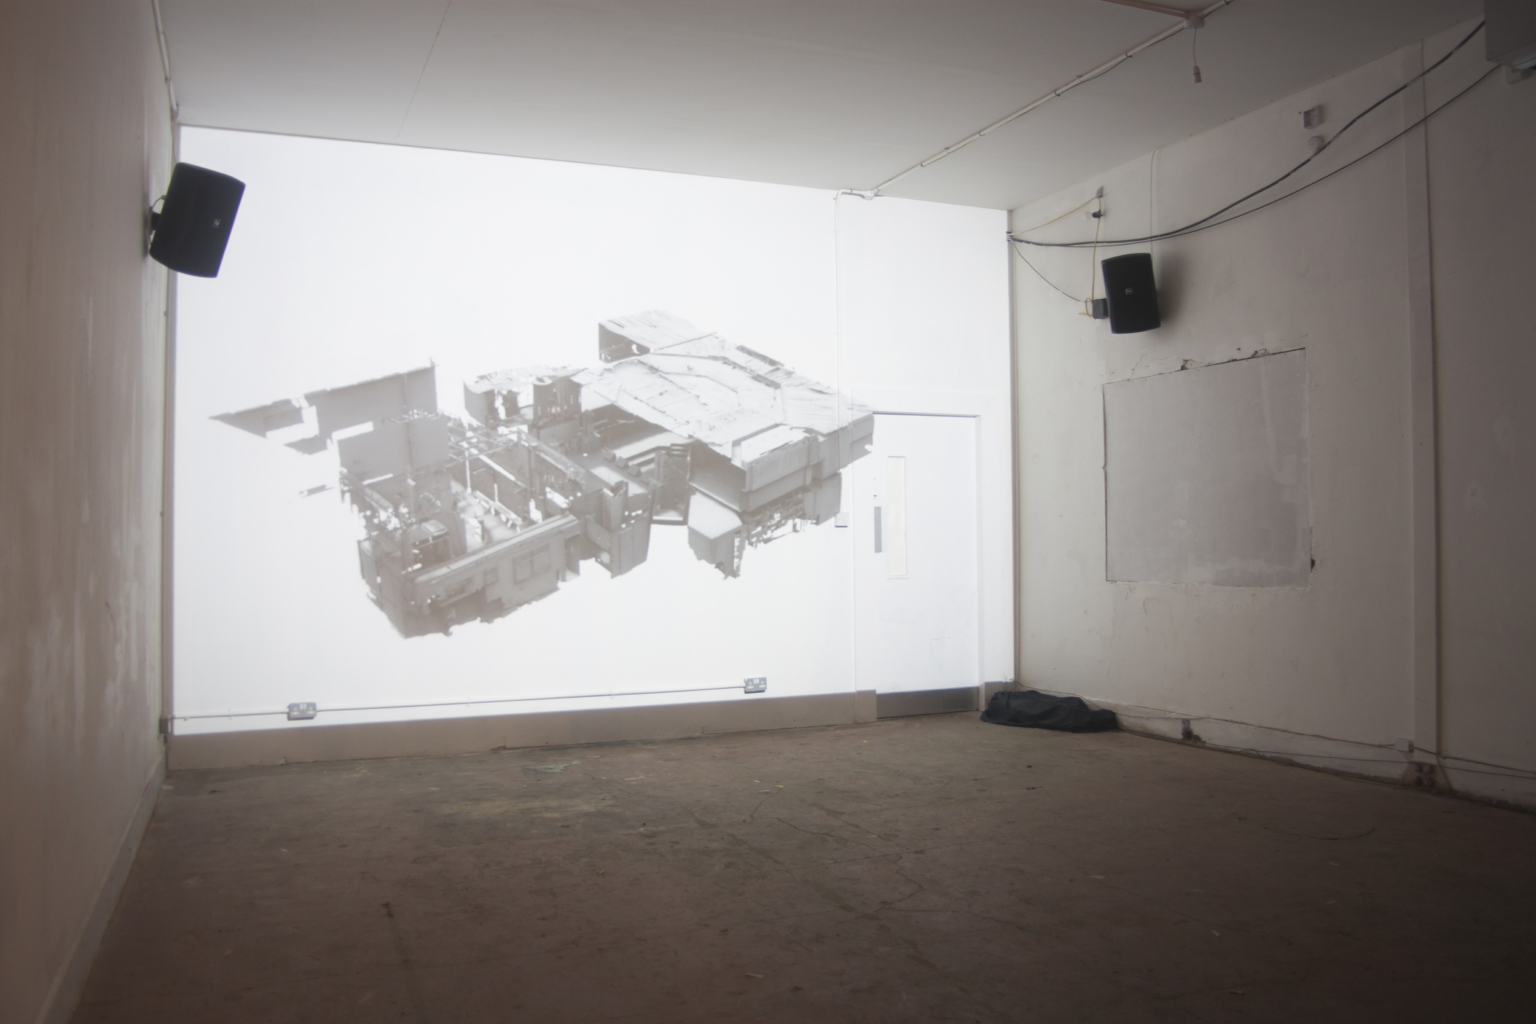 Output Gallery, Liverpool. Installation view of debut exhibition at the gallery by Danielle Waine, May 2018. Courtesy: Output